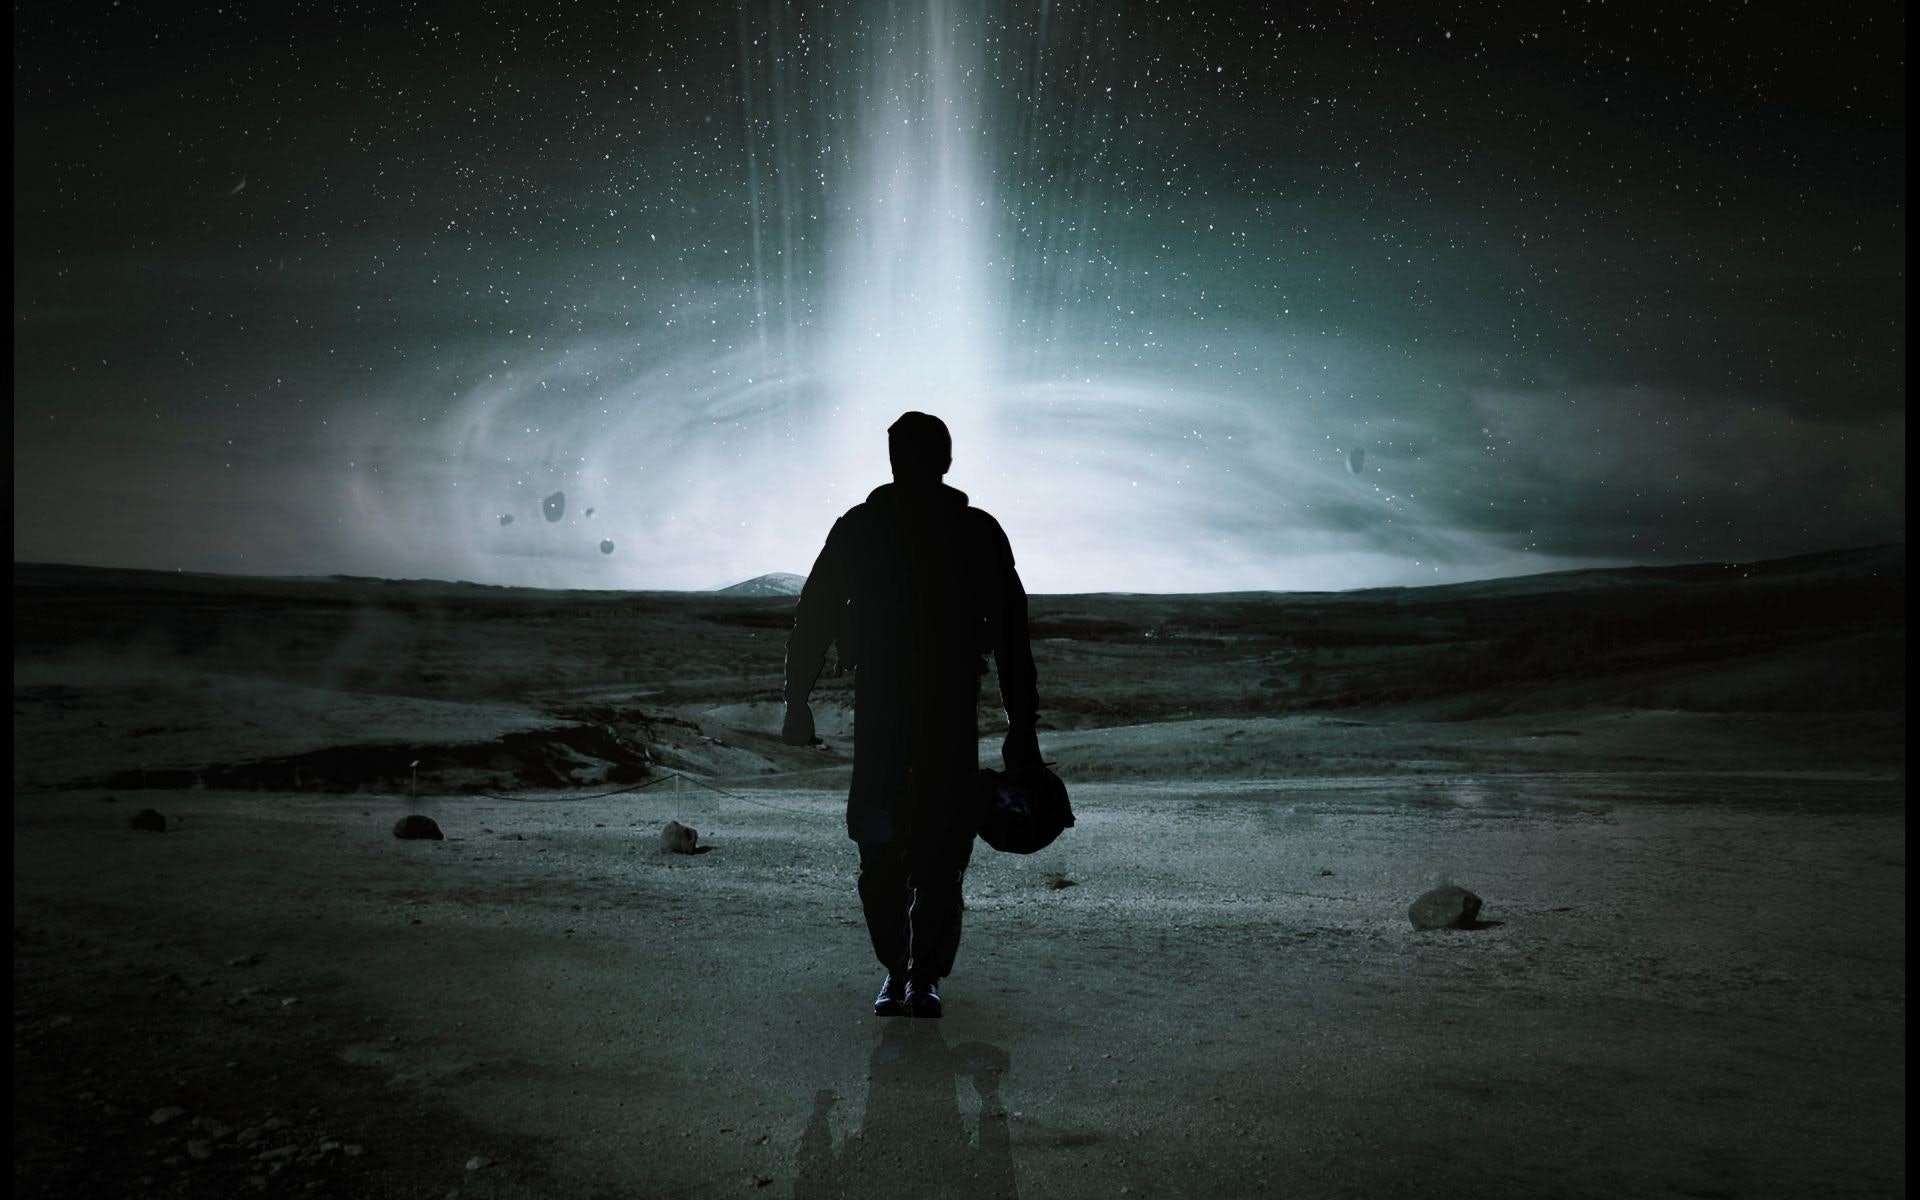 how does time work in interstellar what about wormholes